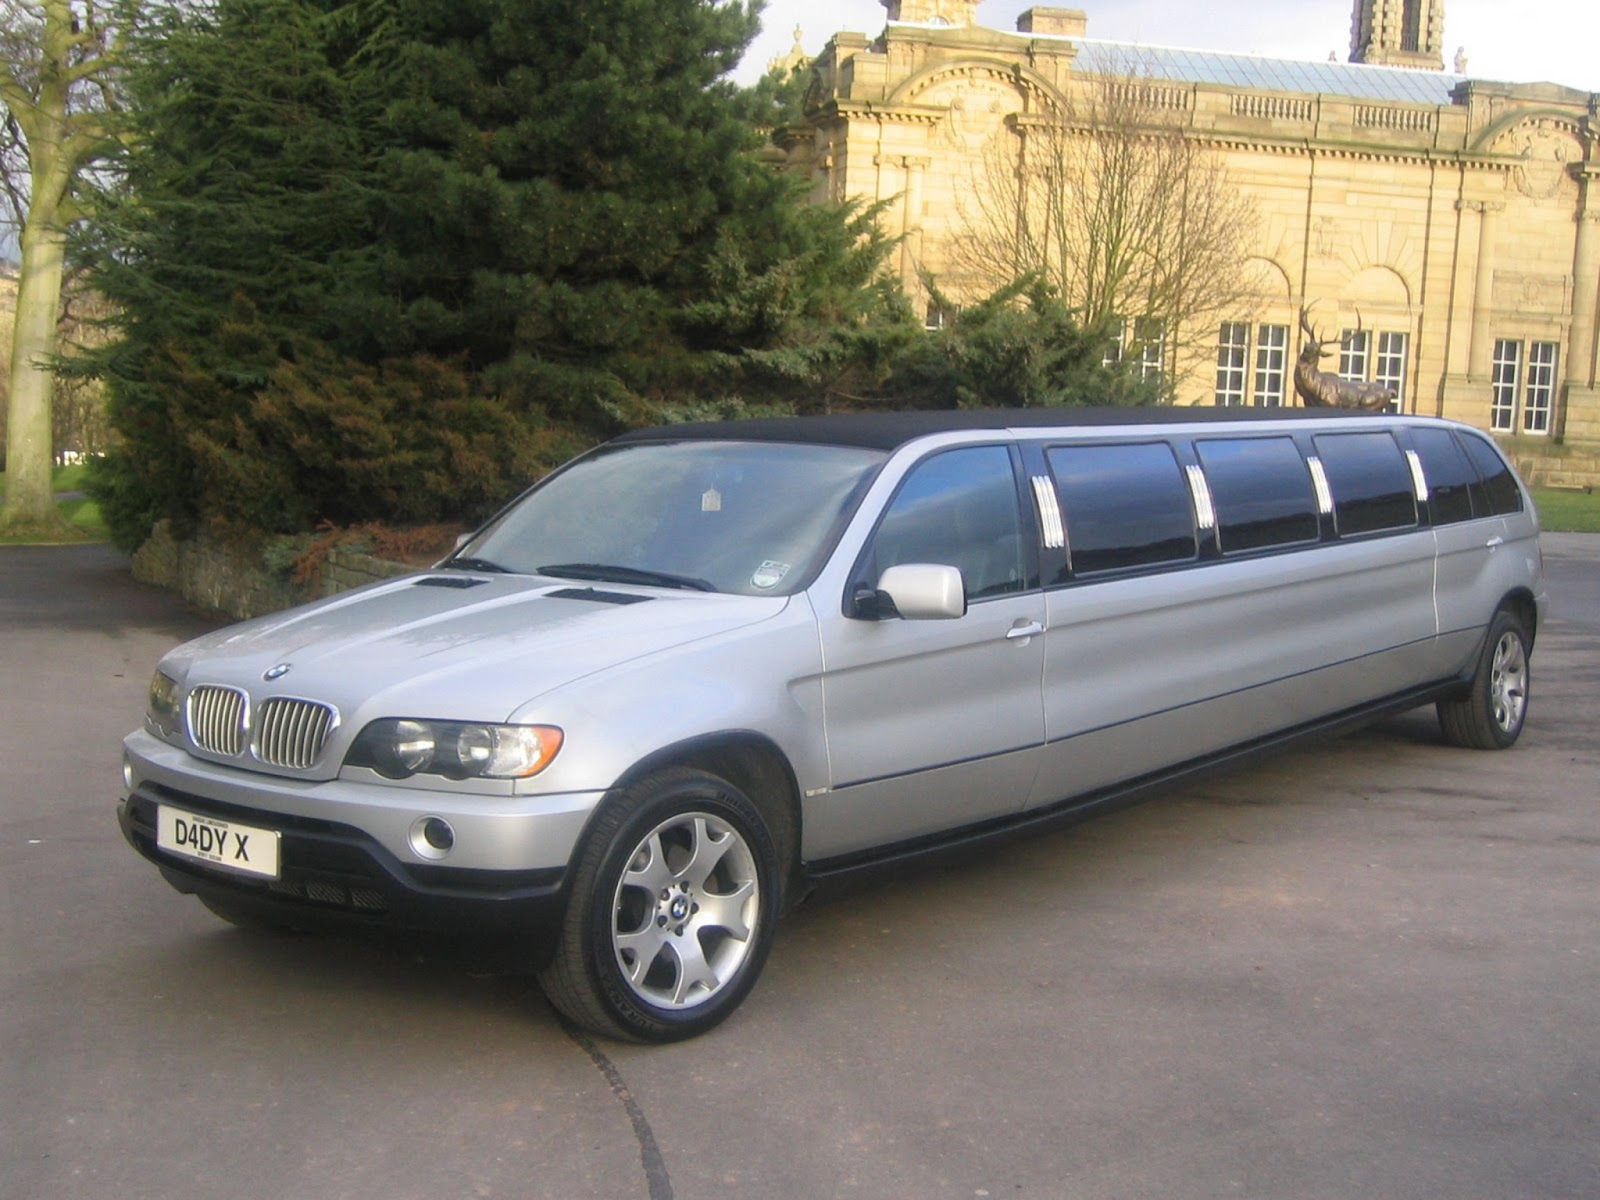 Luxury Limousine Services May 2013